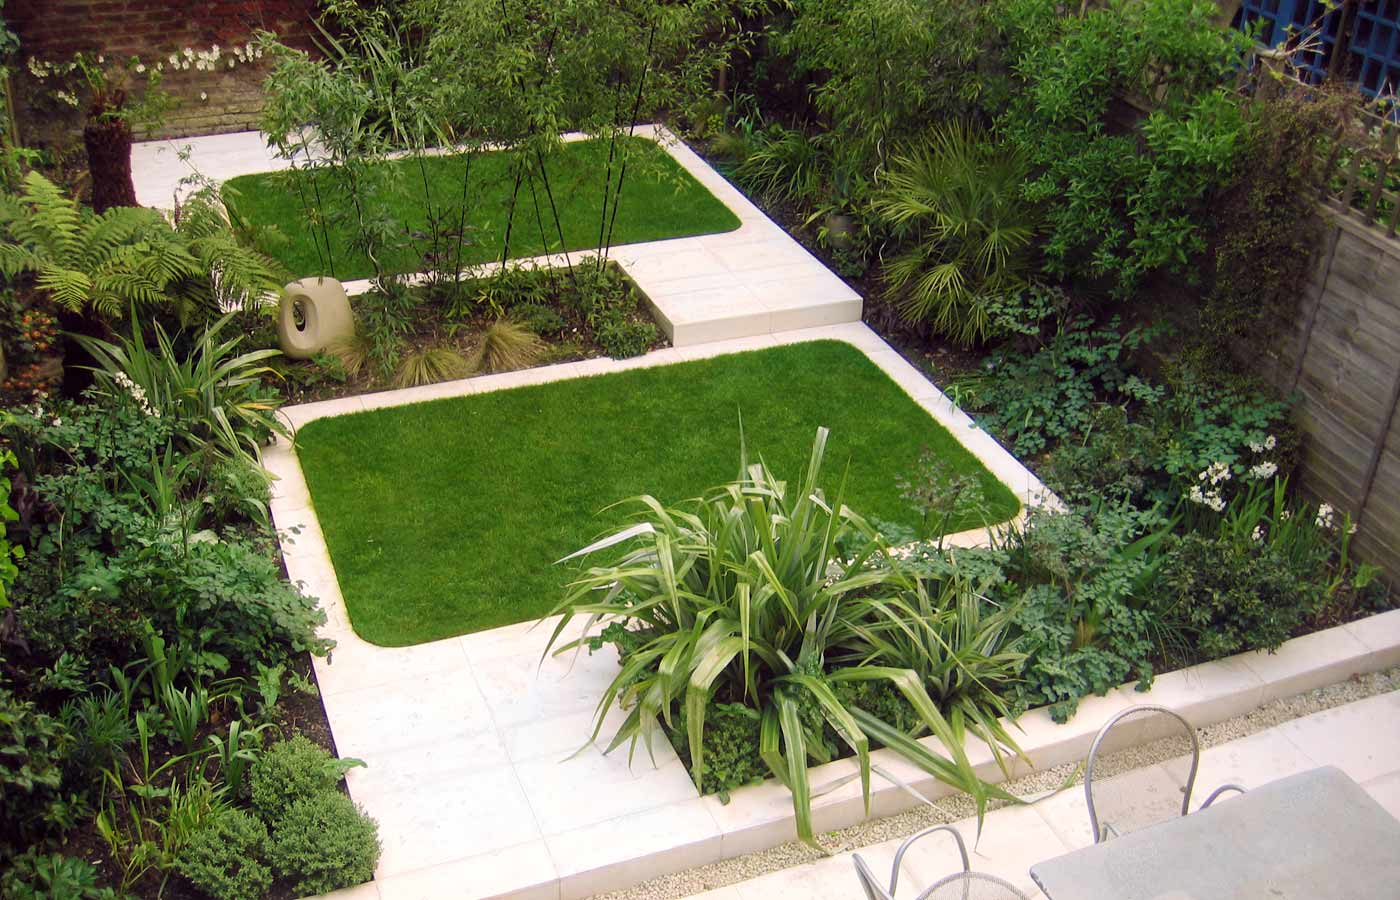 Modern town garden design north facing garden design for A garden design